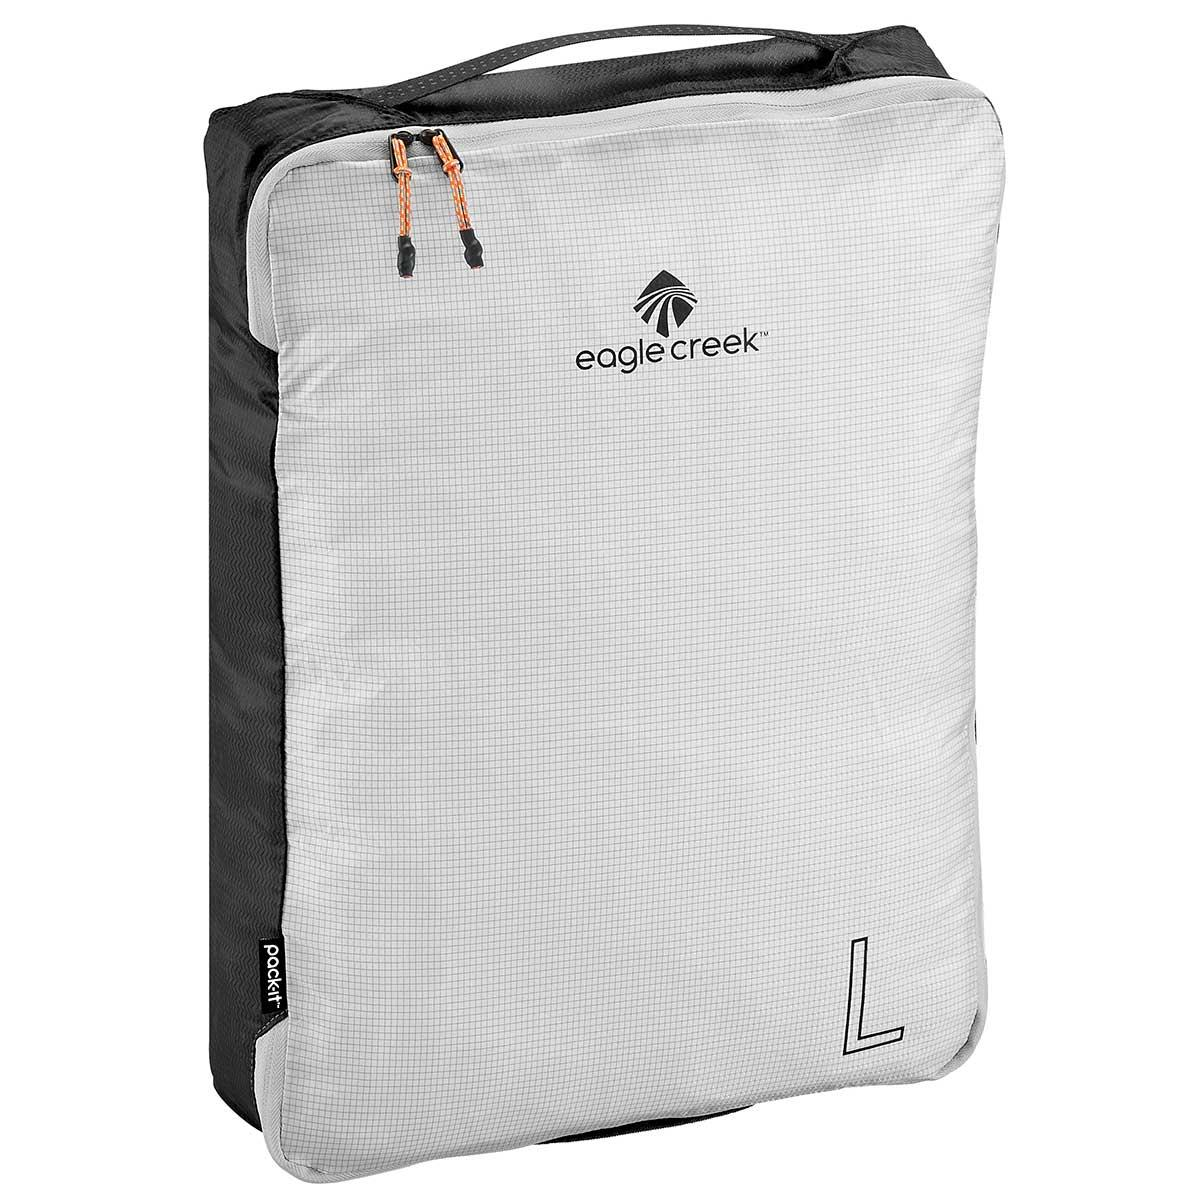 Eagle Creek Pack-It Specter Tech Cube L in Black and White